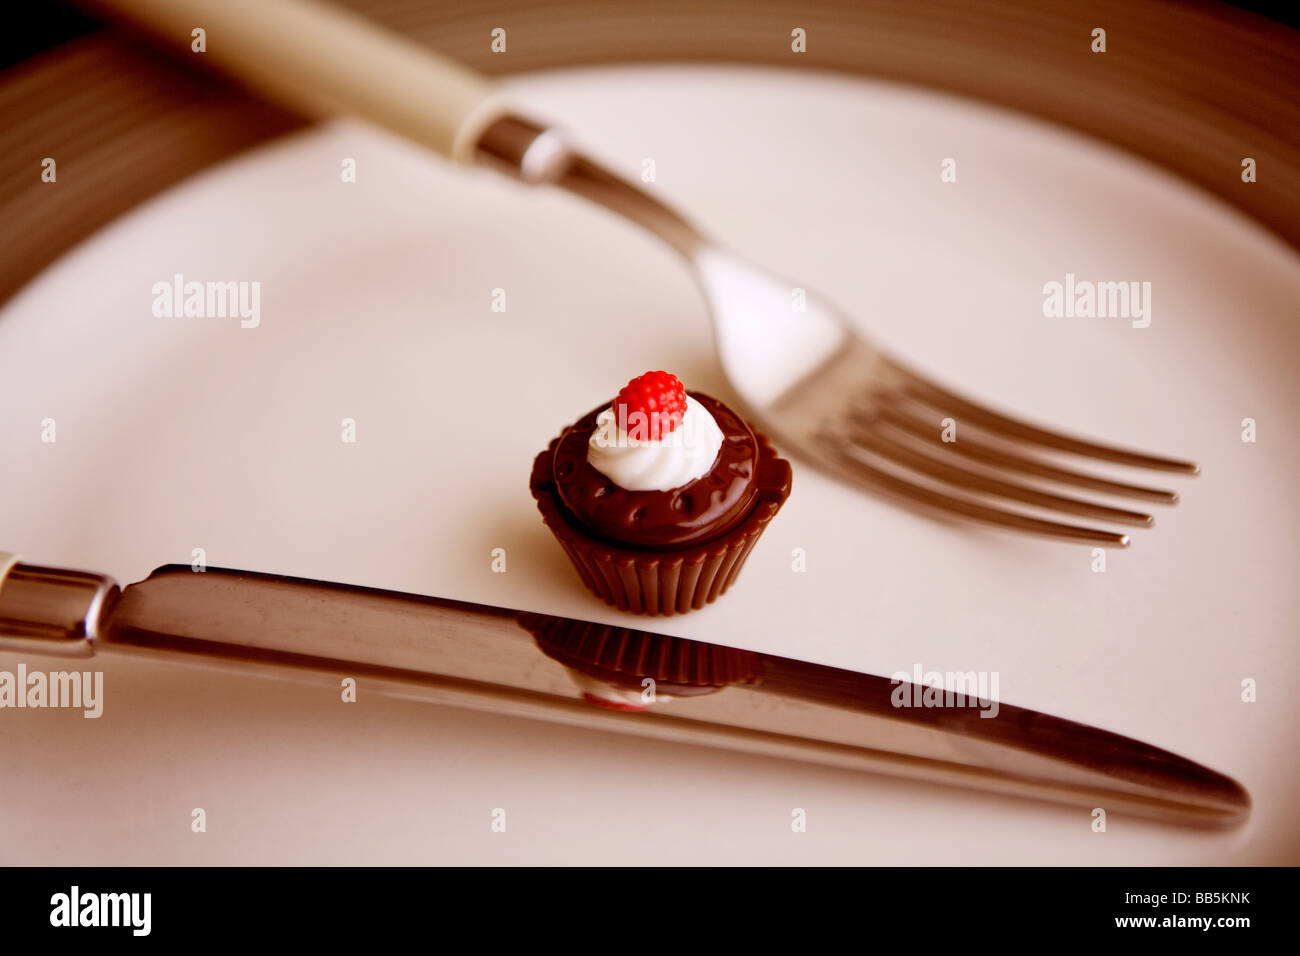 a tiny little cupcake on the plate - Stock Image